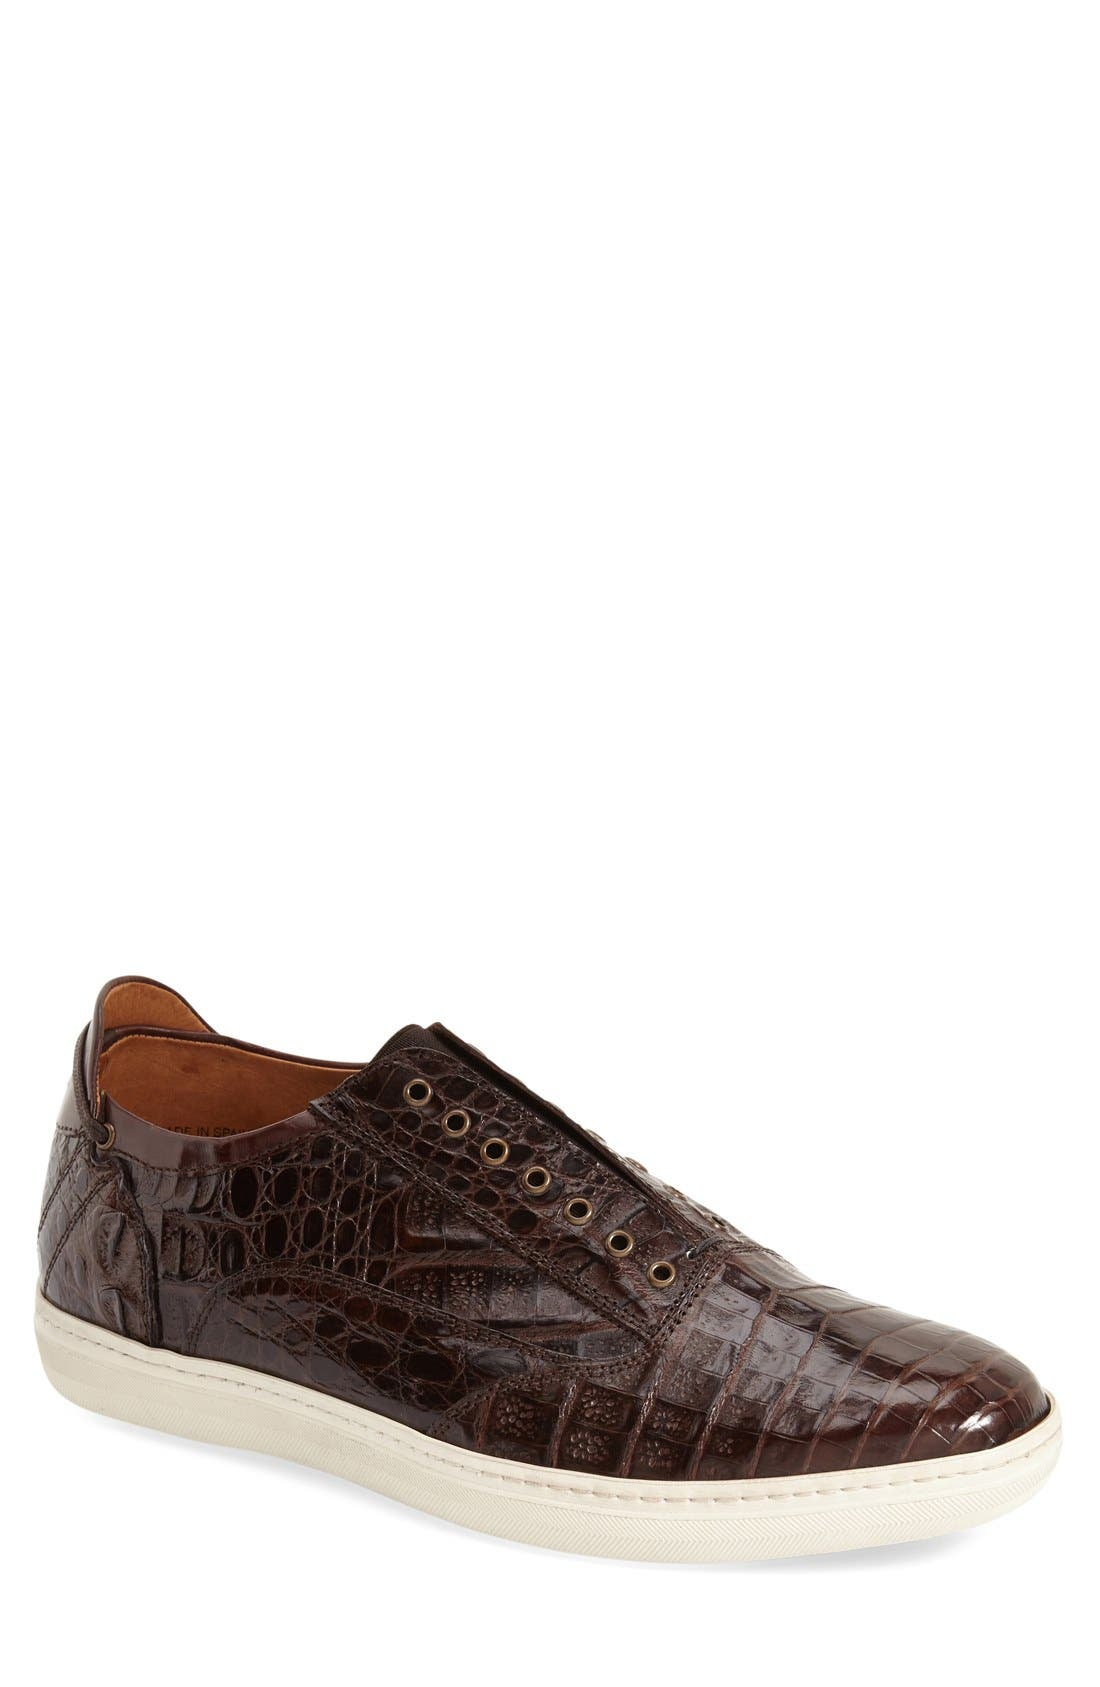 'Emmanuel' Slip-on Sneaker,                         Main,                         color, Brown Crocodile